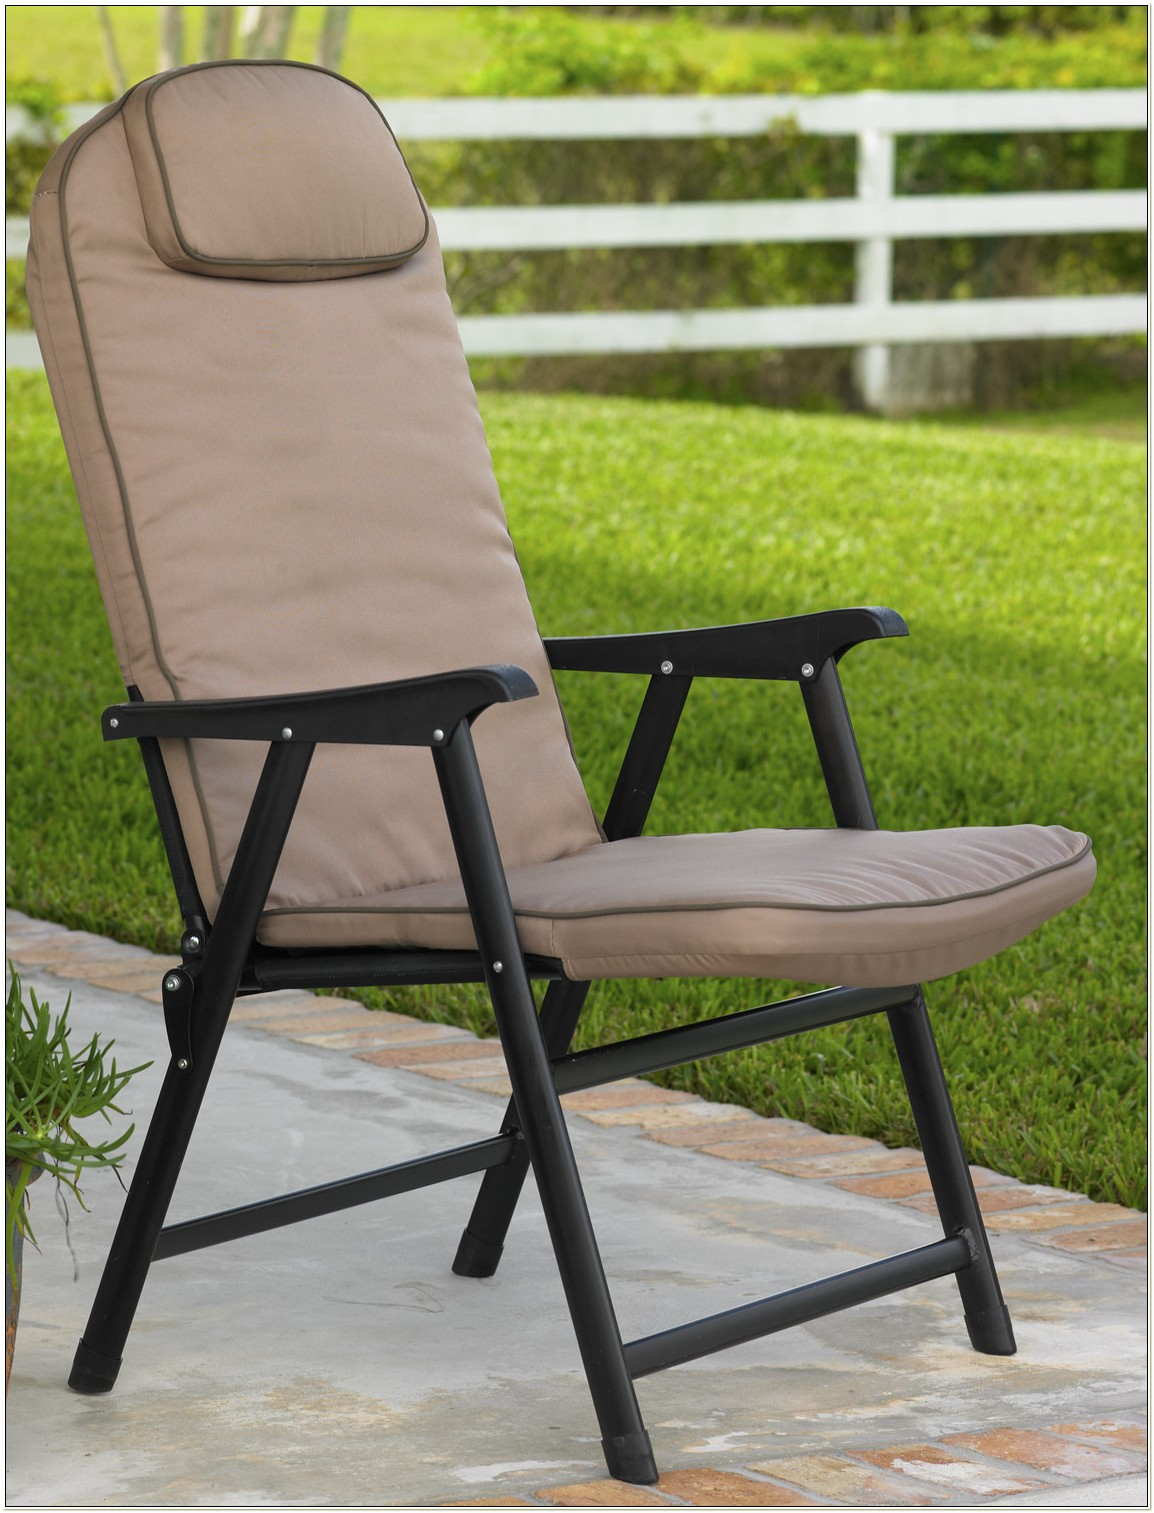 400 Pound Capacity Folding Chair